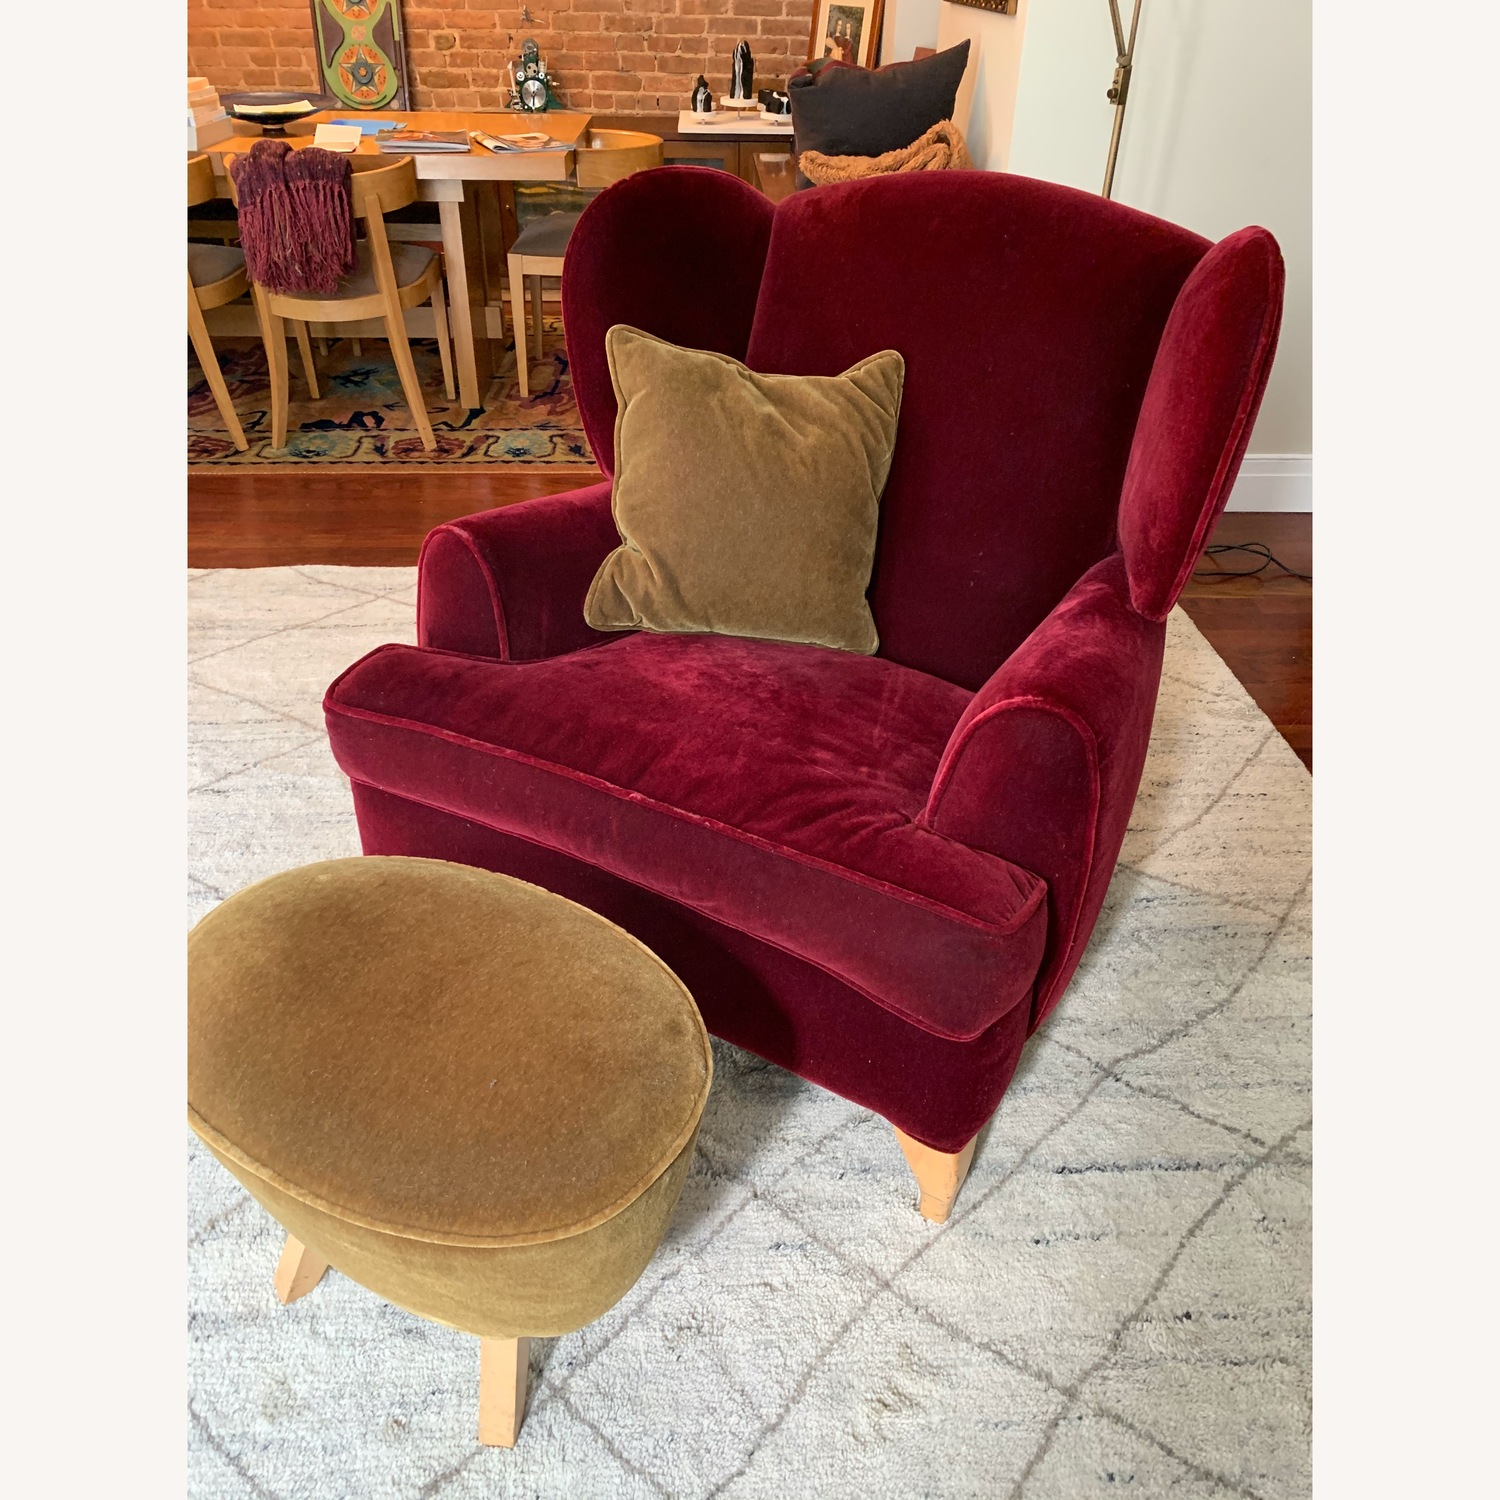 Oversized Wingback Chair with Ottoman